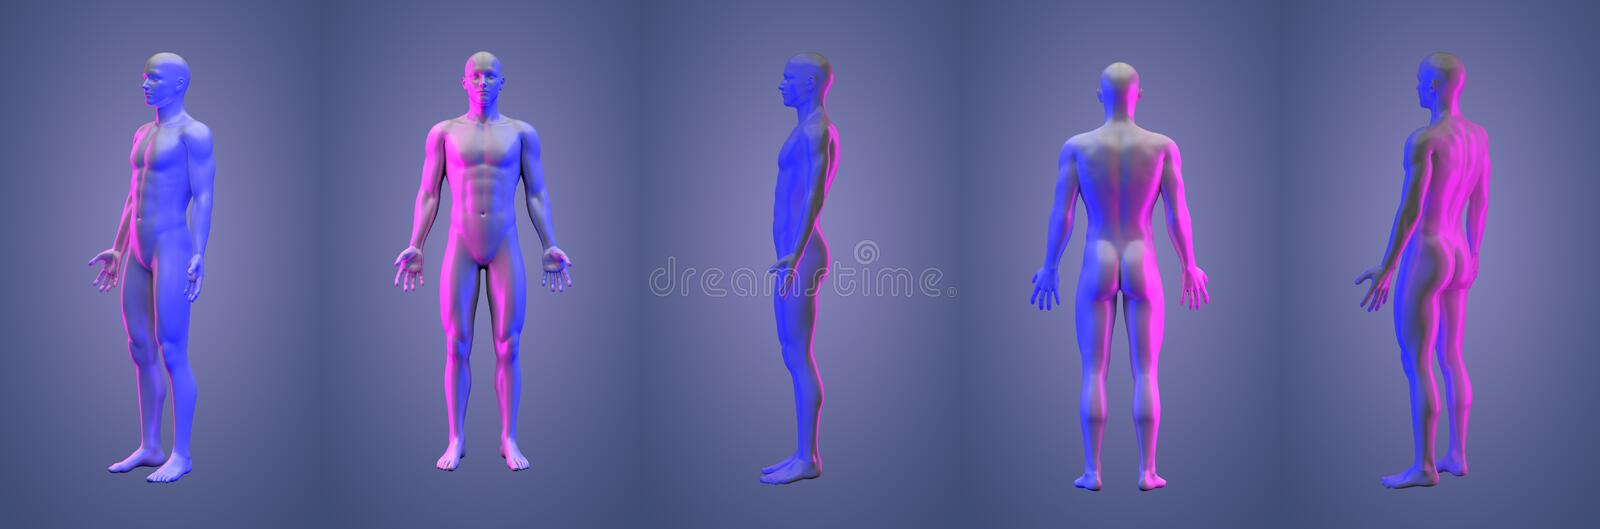 3d rendering illustration of human. Collection royalty free illustration